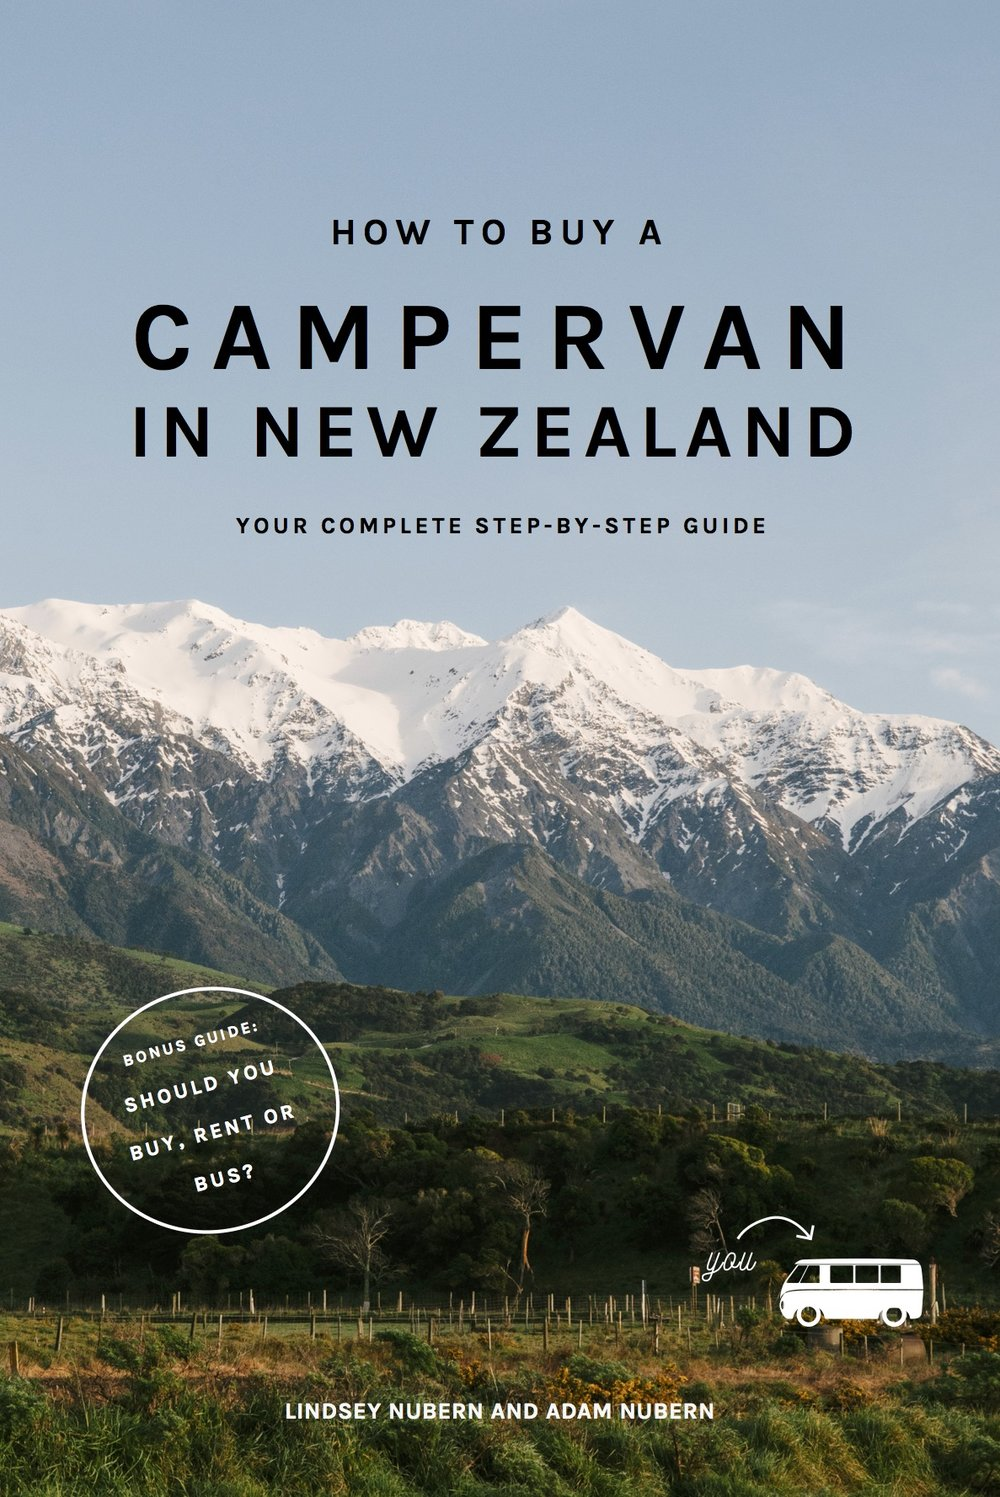 how to campervan in new zealand.jpg